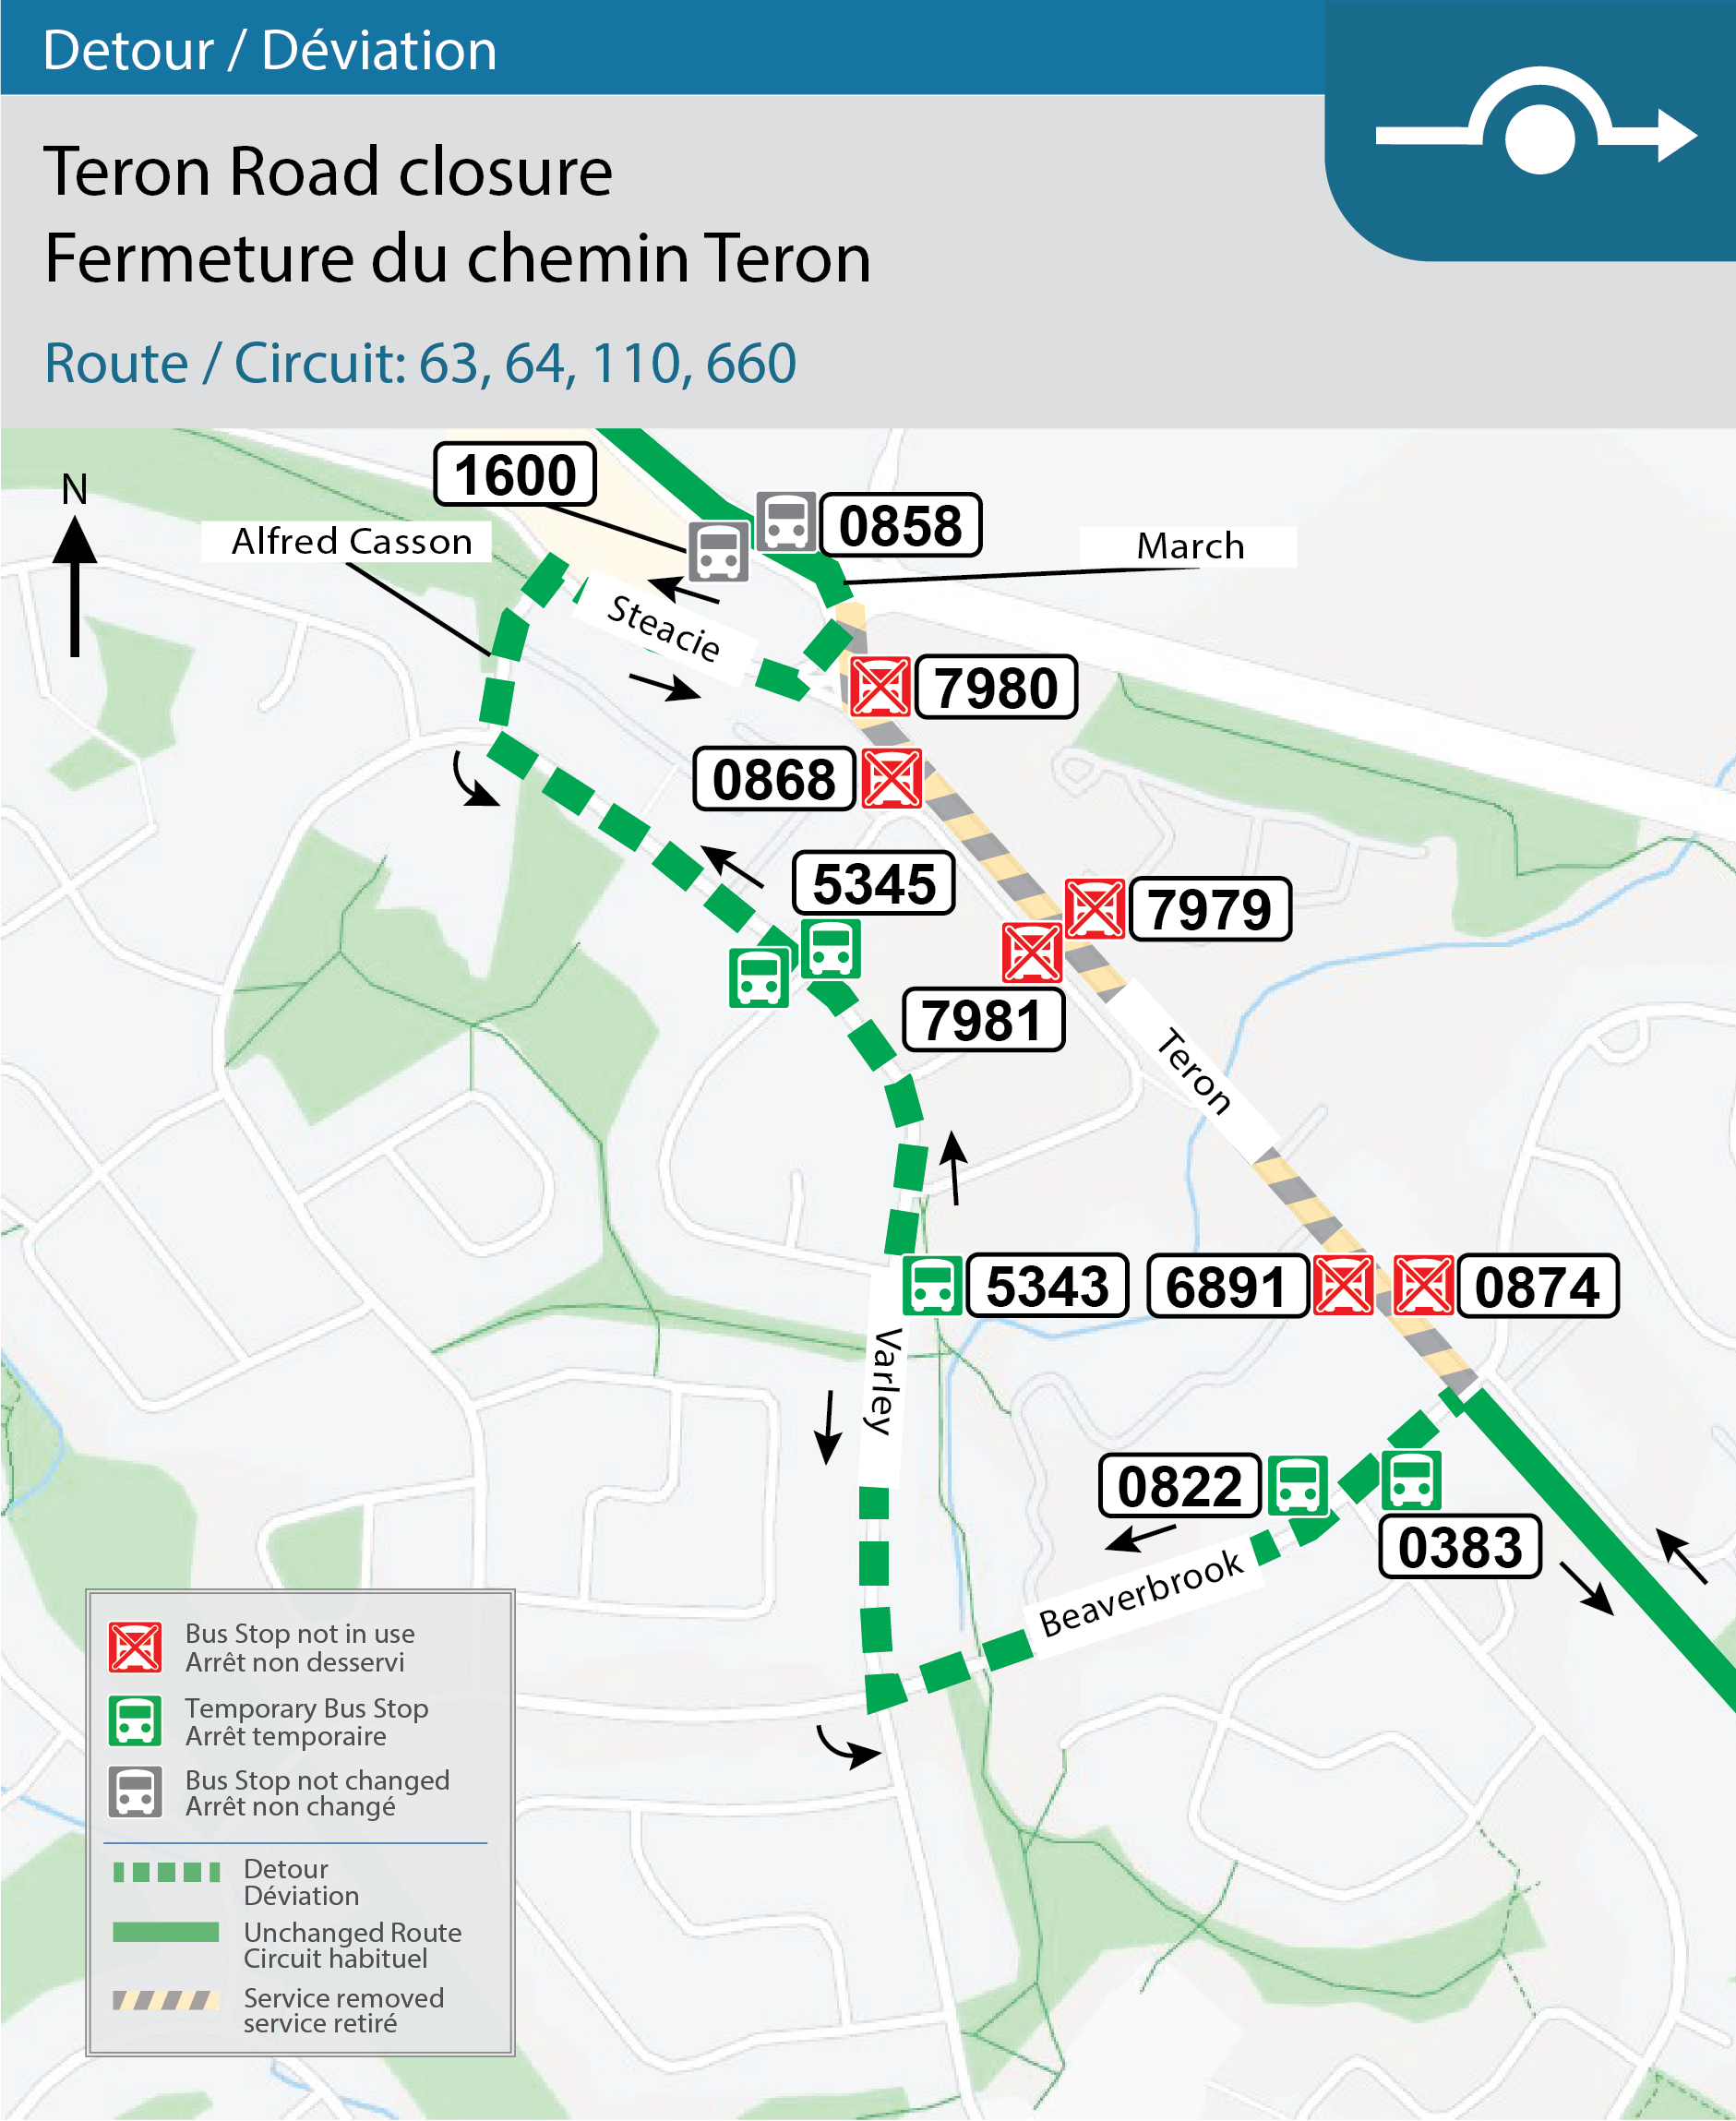 Map for Routes: 63, 64, 110 and 660, Detour for Teron Road closure